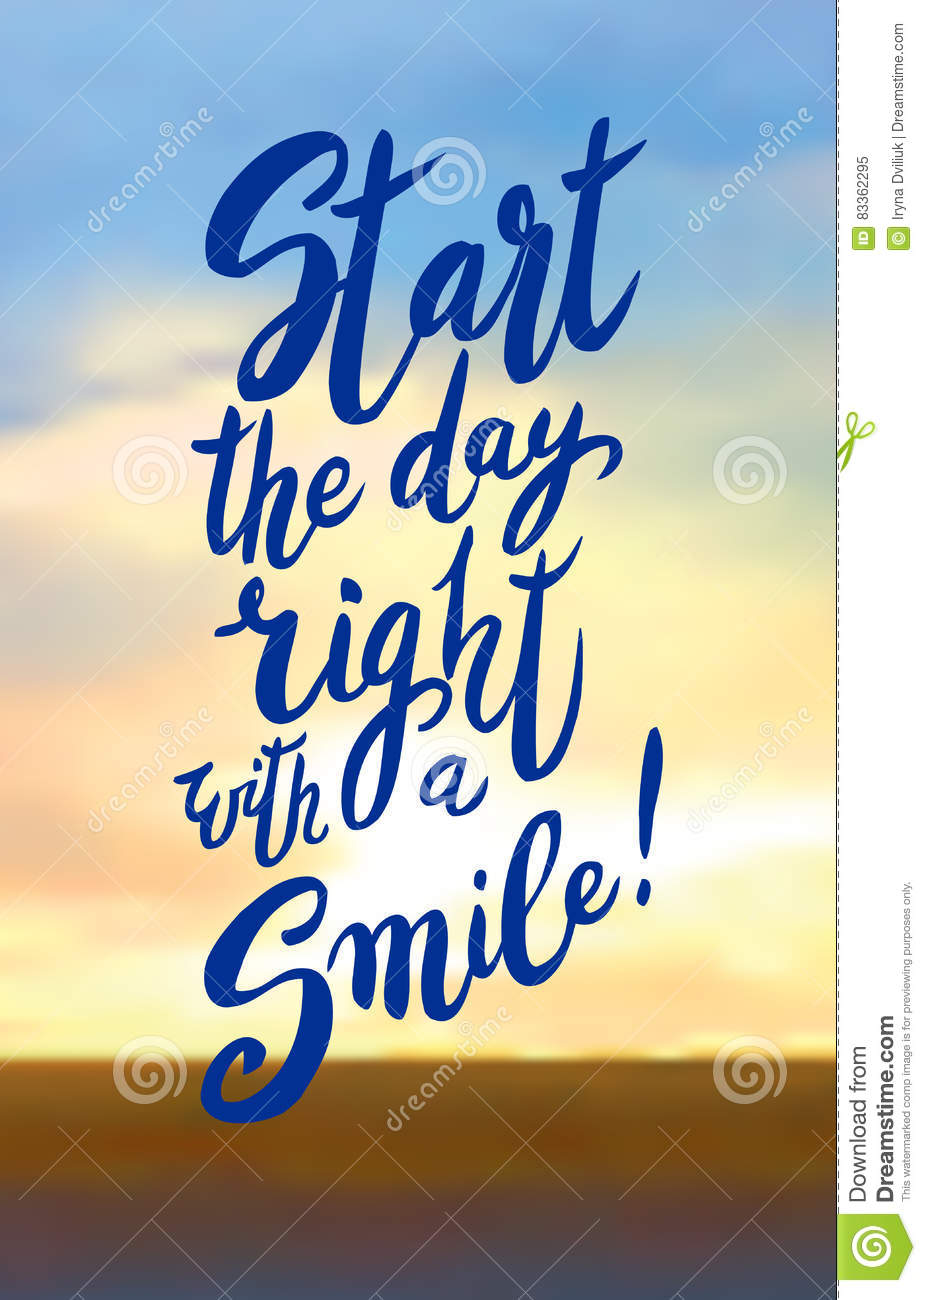 Start Your Day With A Smile. Stock Vector   Illustration of drawn